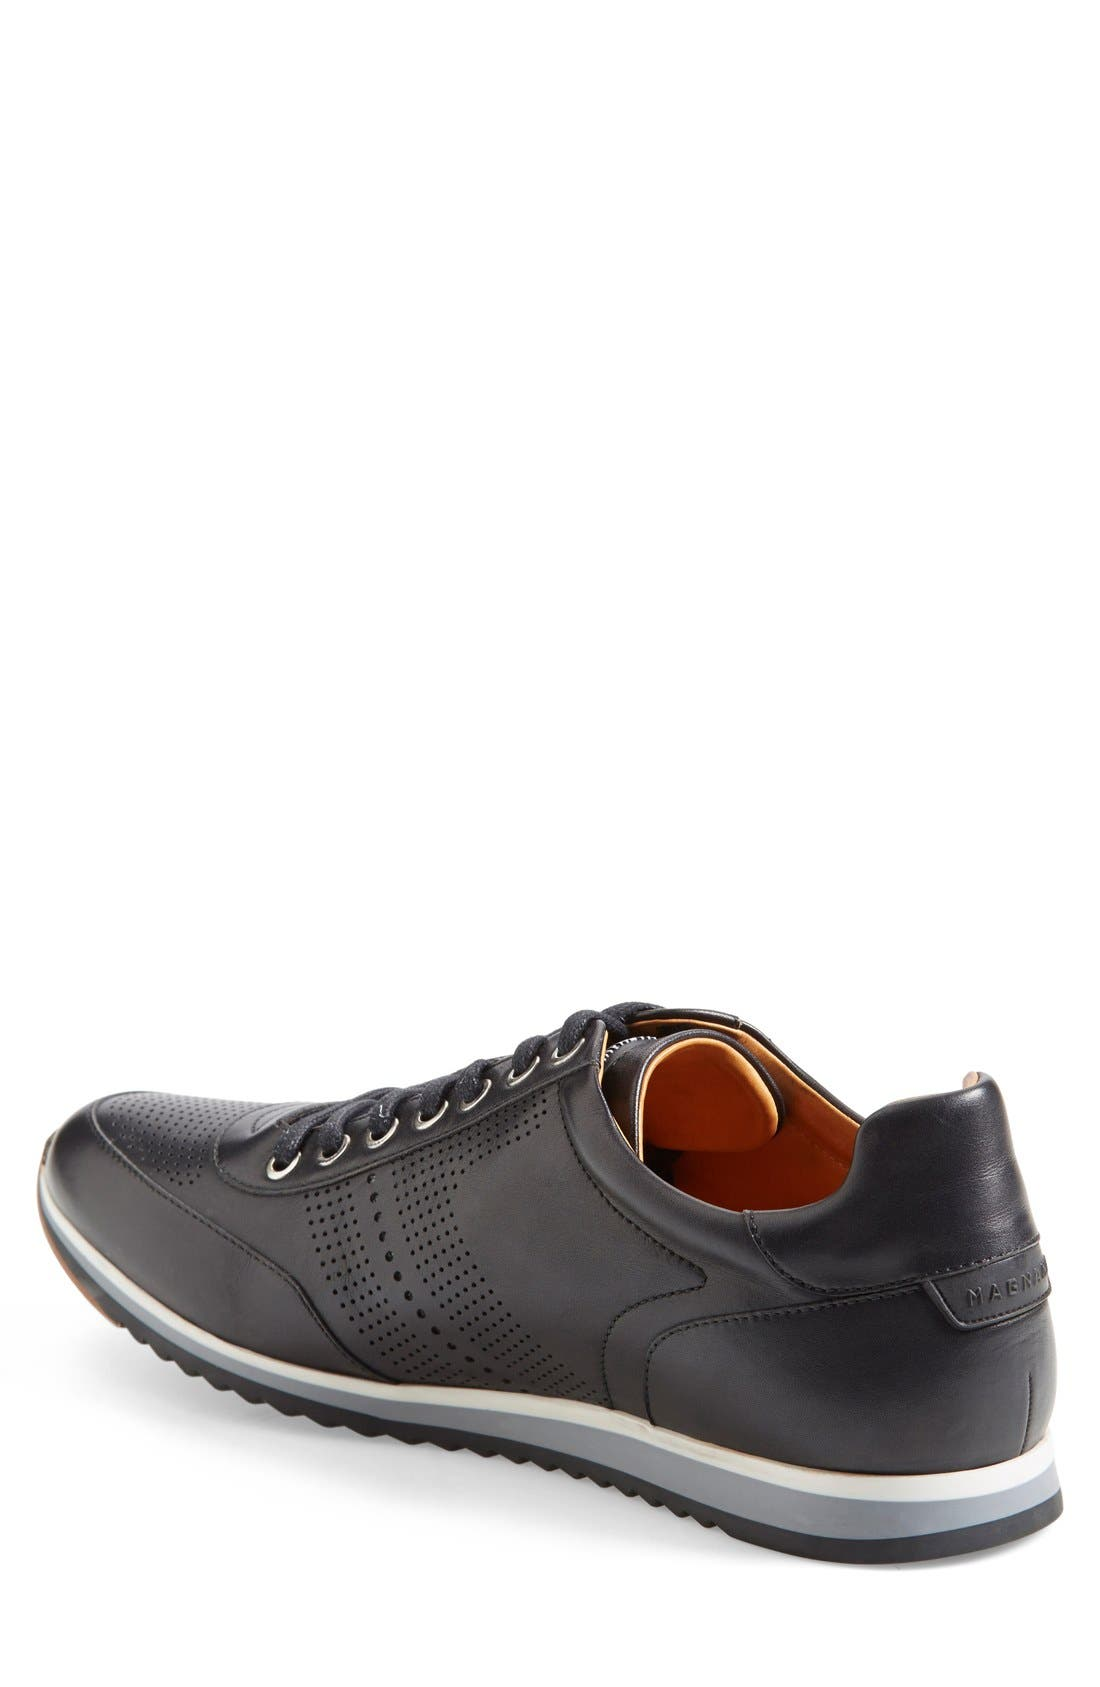 Alternate Image 2  - Magnanni 'Pueblo' Sneaker (Men)